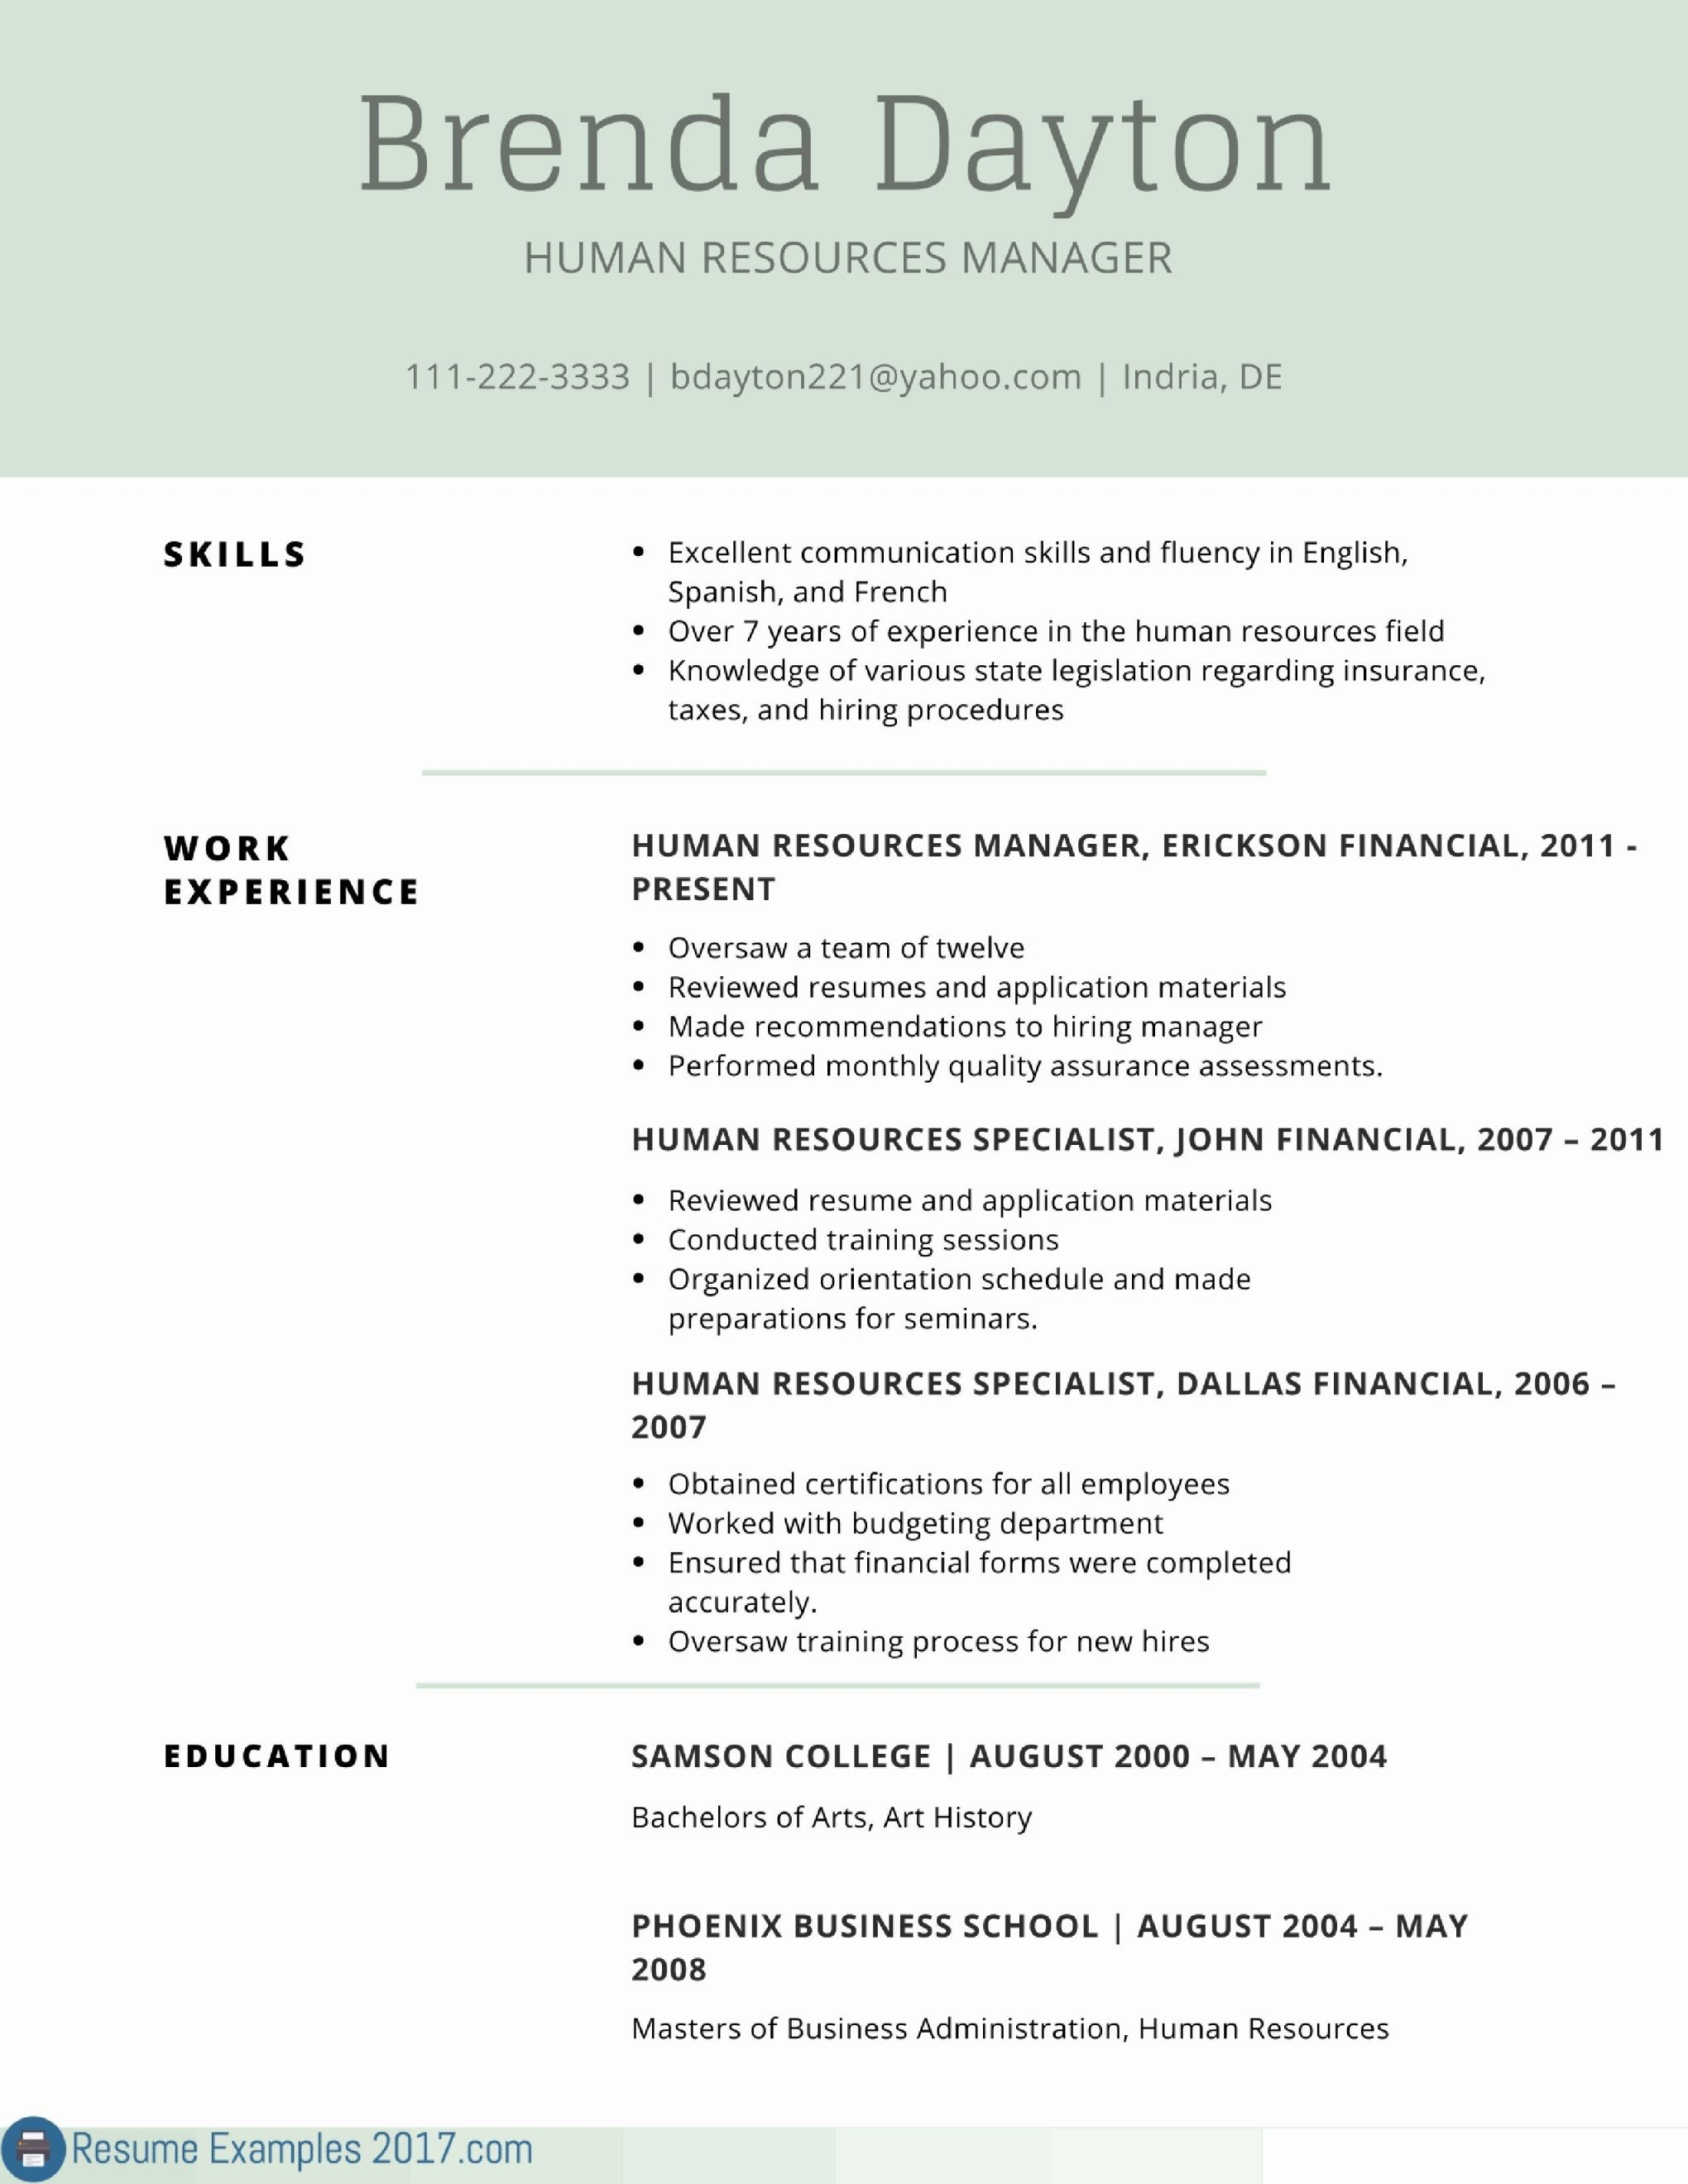 Scientist Resume Samples - 20 Scientist Resume Examples